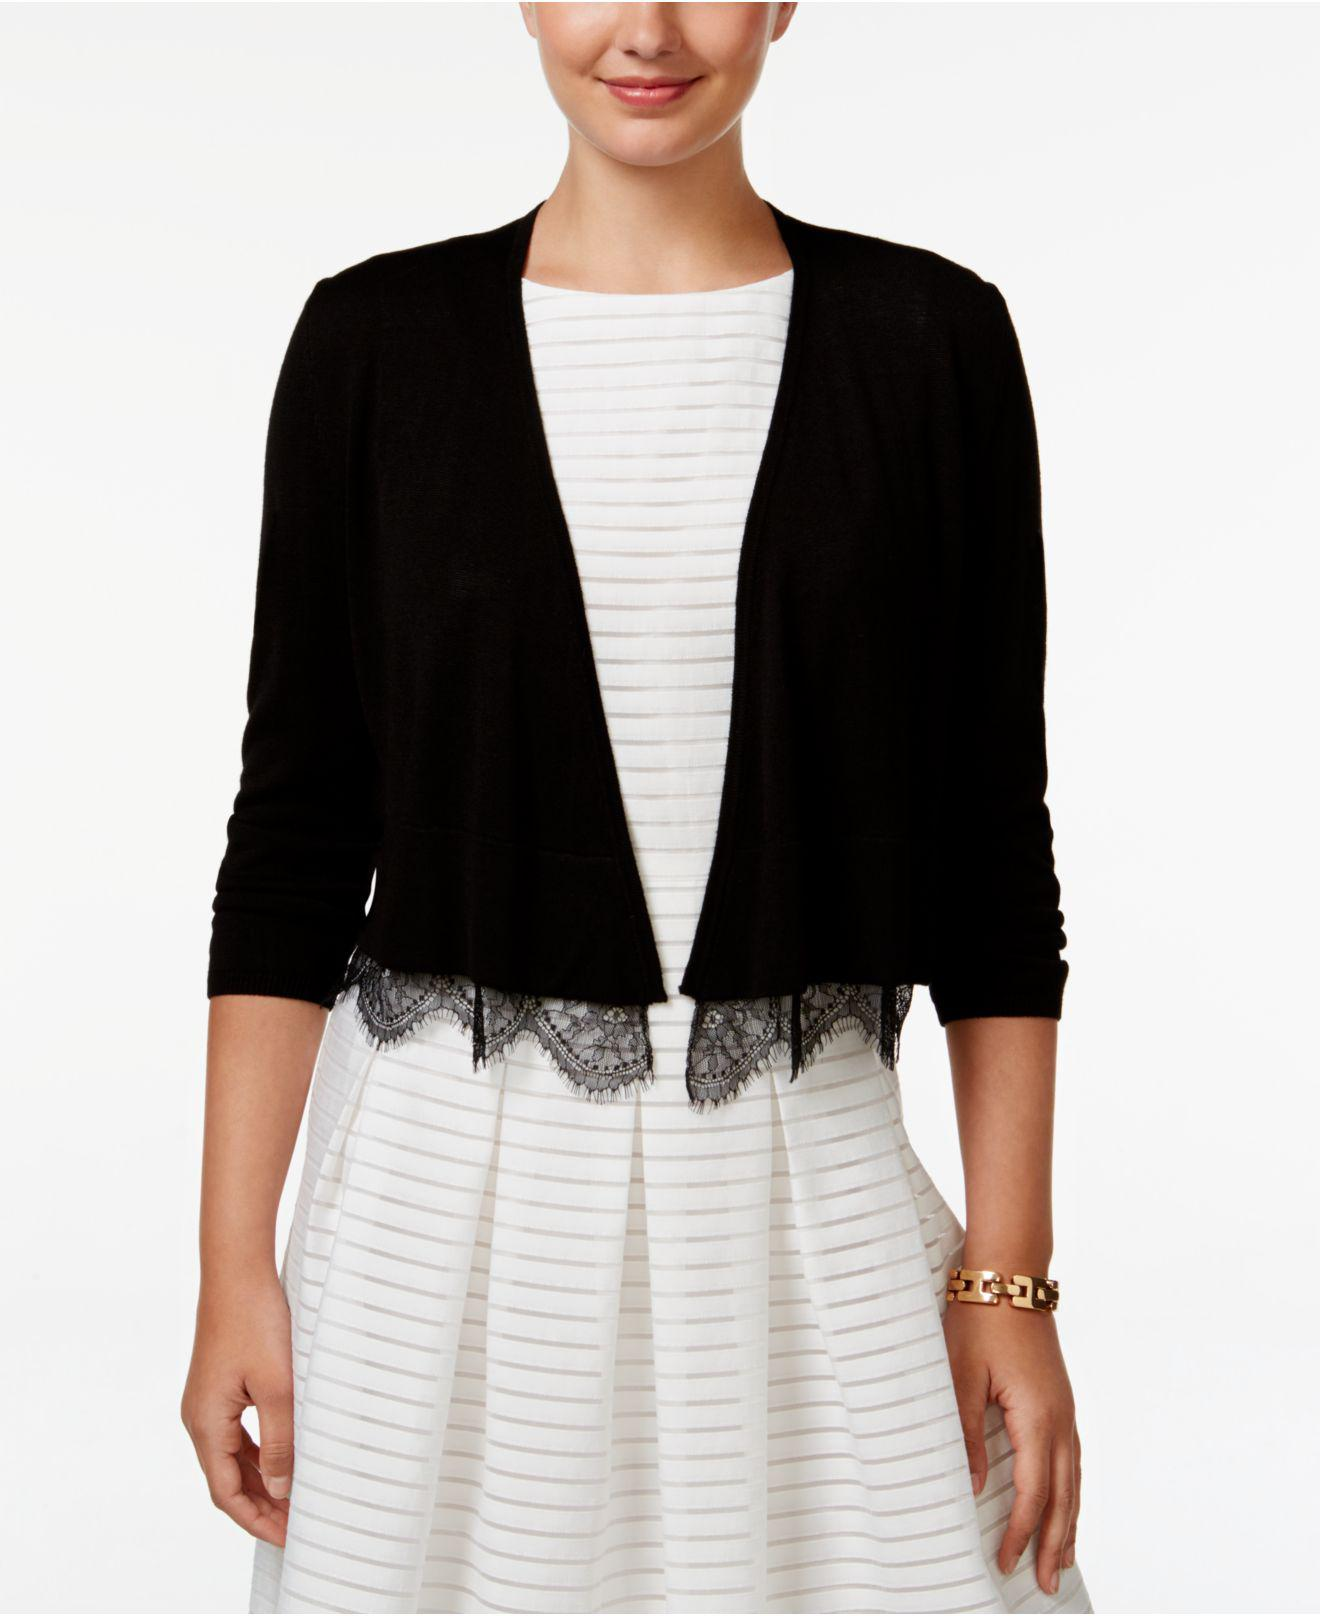 Tommy hilfiger Lace-trim Cropped Cardigan in Black | Lyst